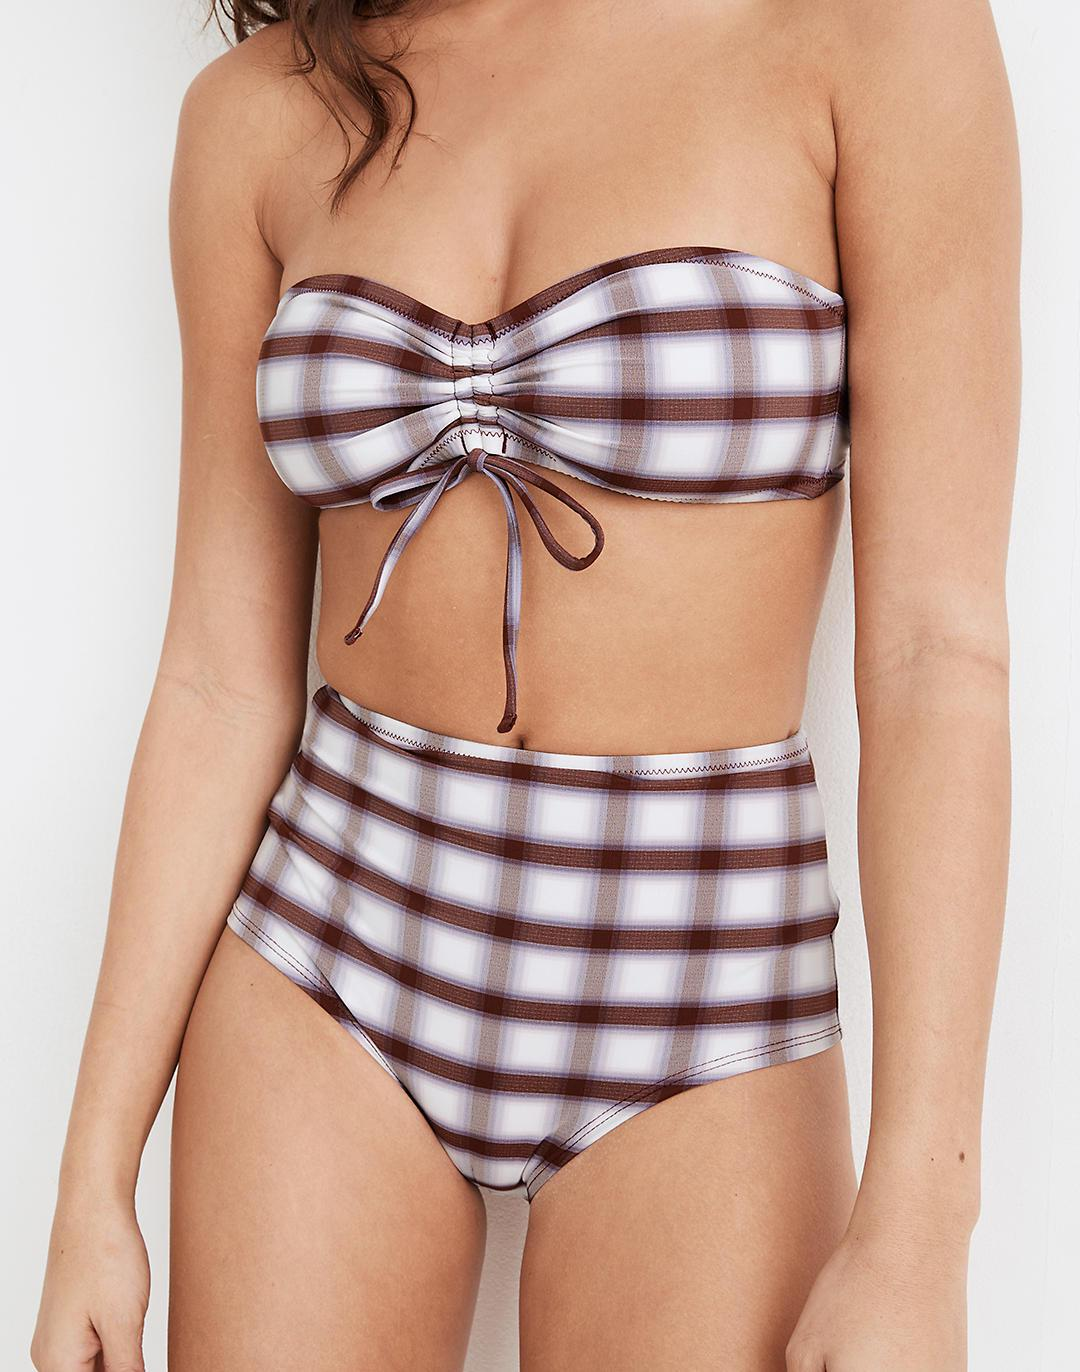 Madewell Second Wave Cinched Bandeau Bikini Top in Peralta Plaid 1